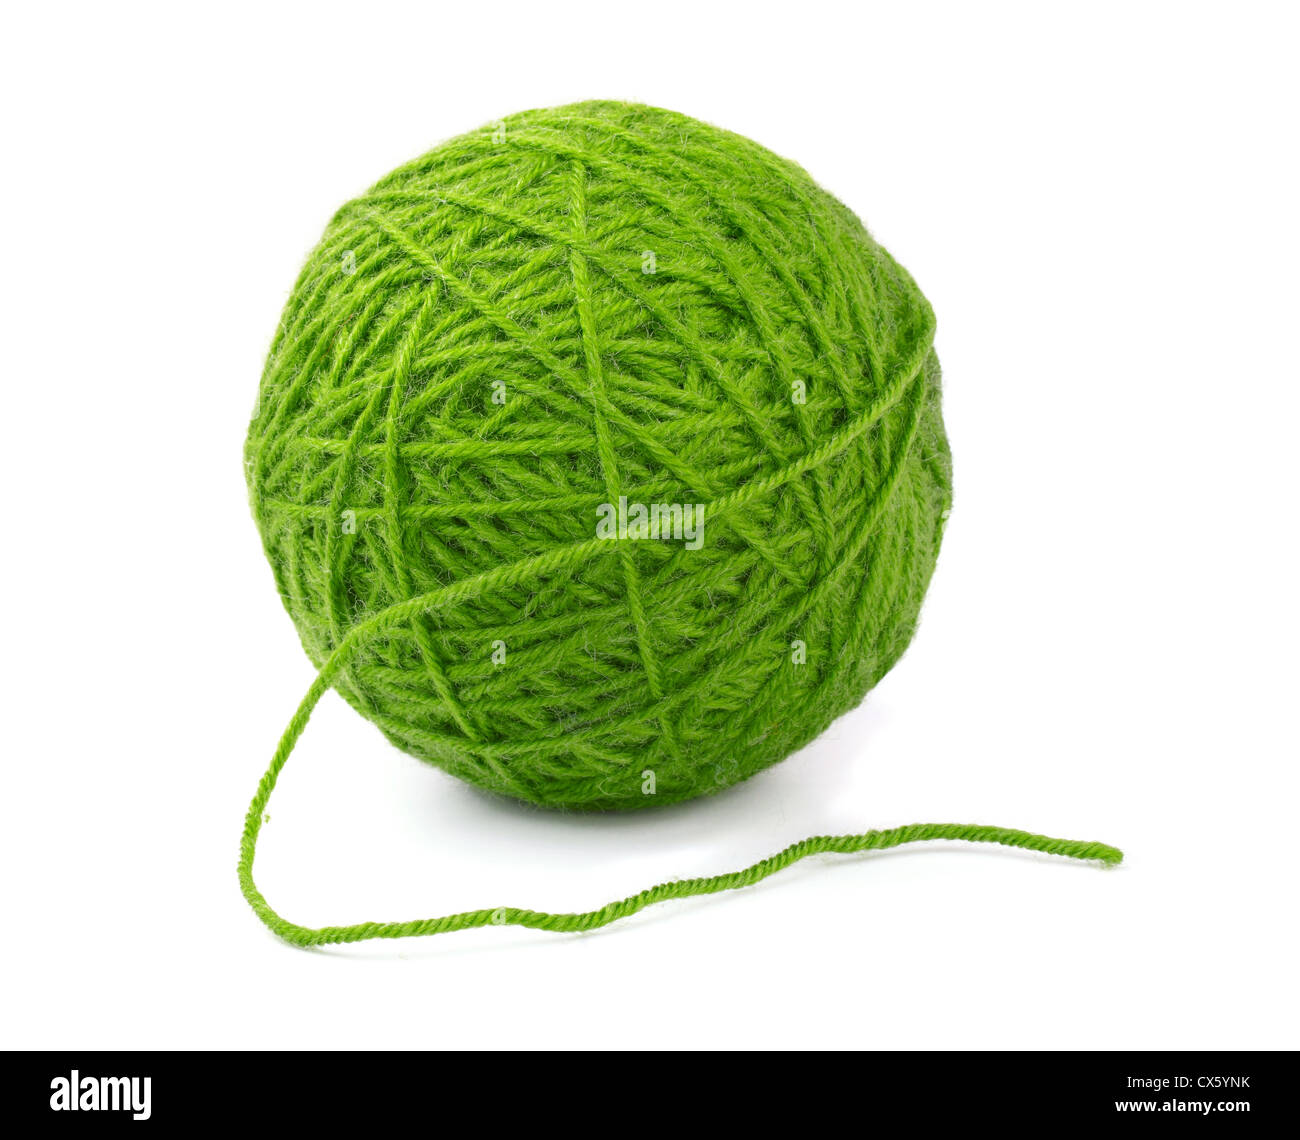 Green wool yarn ball isolated on white - Stock Image